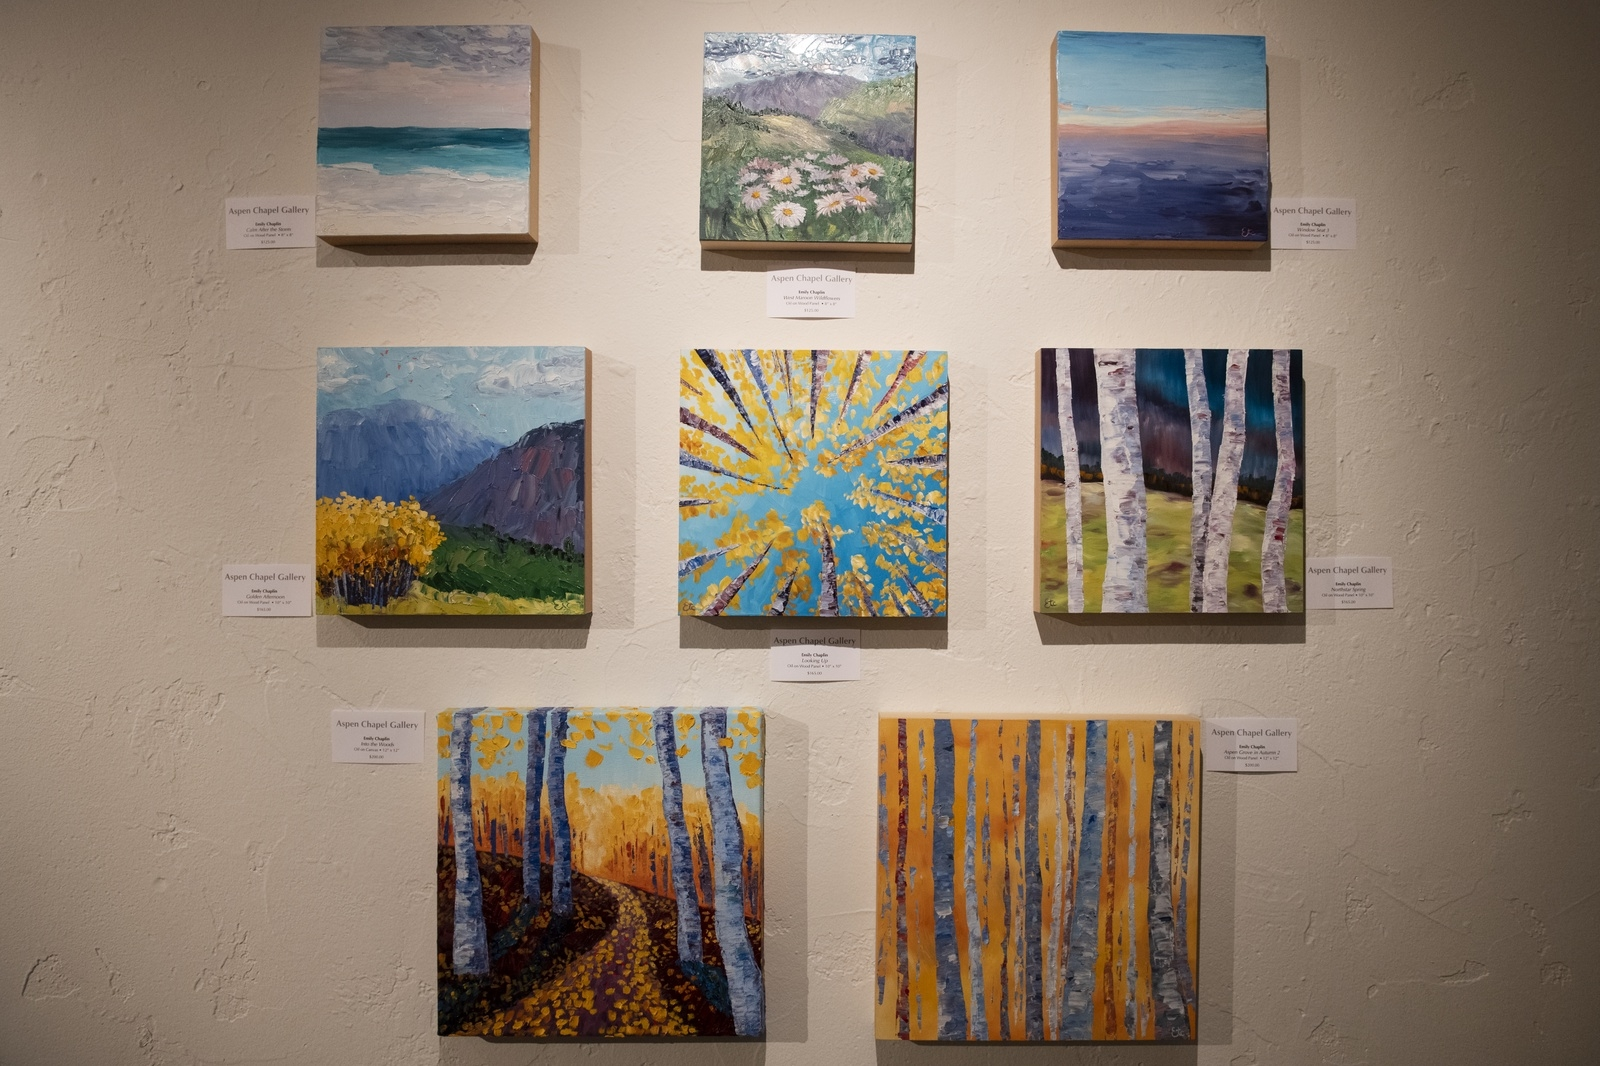 Oil paintings on wood panel by Emily Chaplin displayed in the Aspen Chapel Gallery for the Small Wonders holiday show and sale on Tuesday, Nov. 17, 2020. (Kelsey Brunner/The Aspen Times)